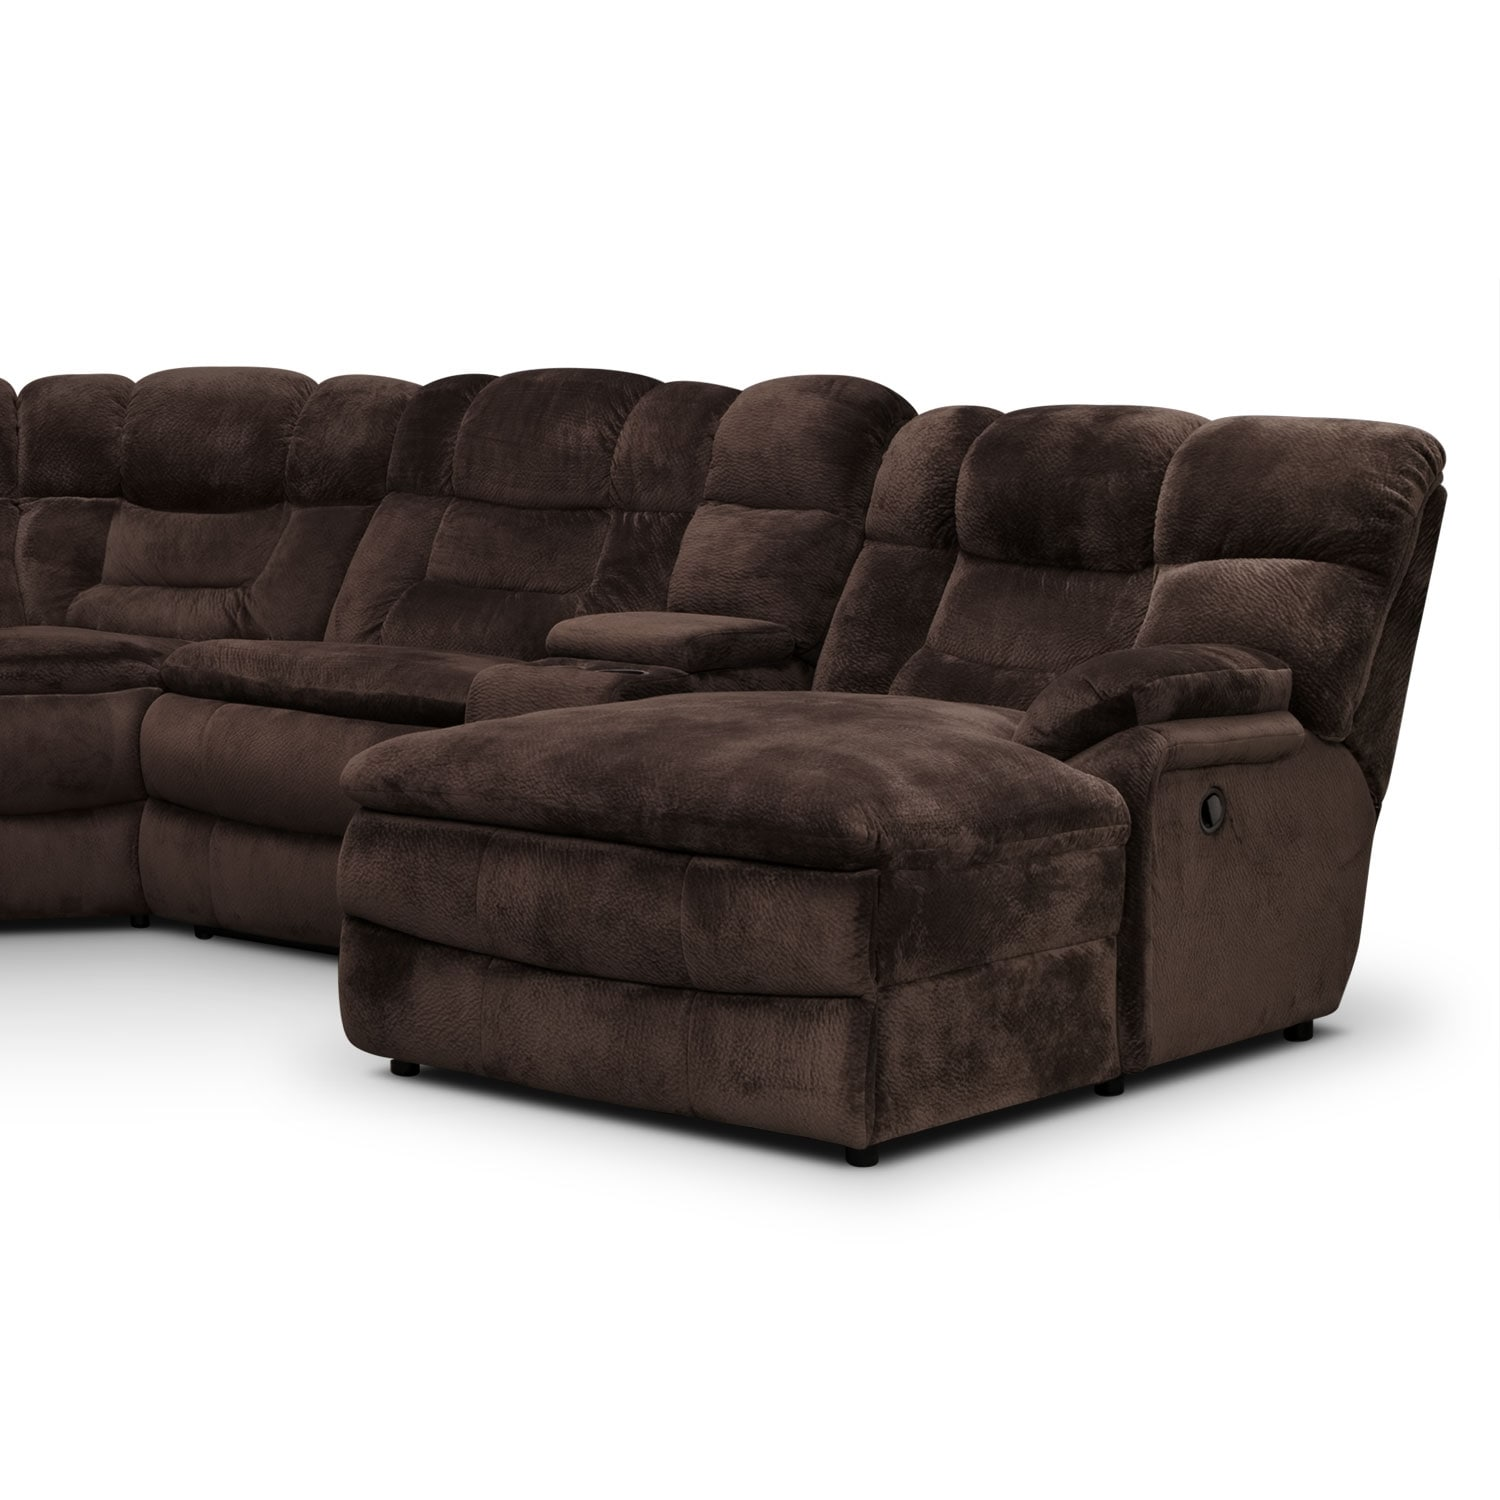 Big softie 6 piece power reclining sectional with right for Sectional sofa with bed and recliner